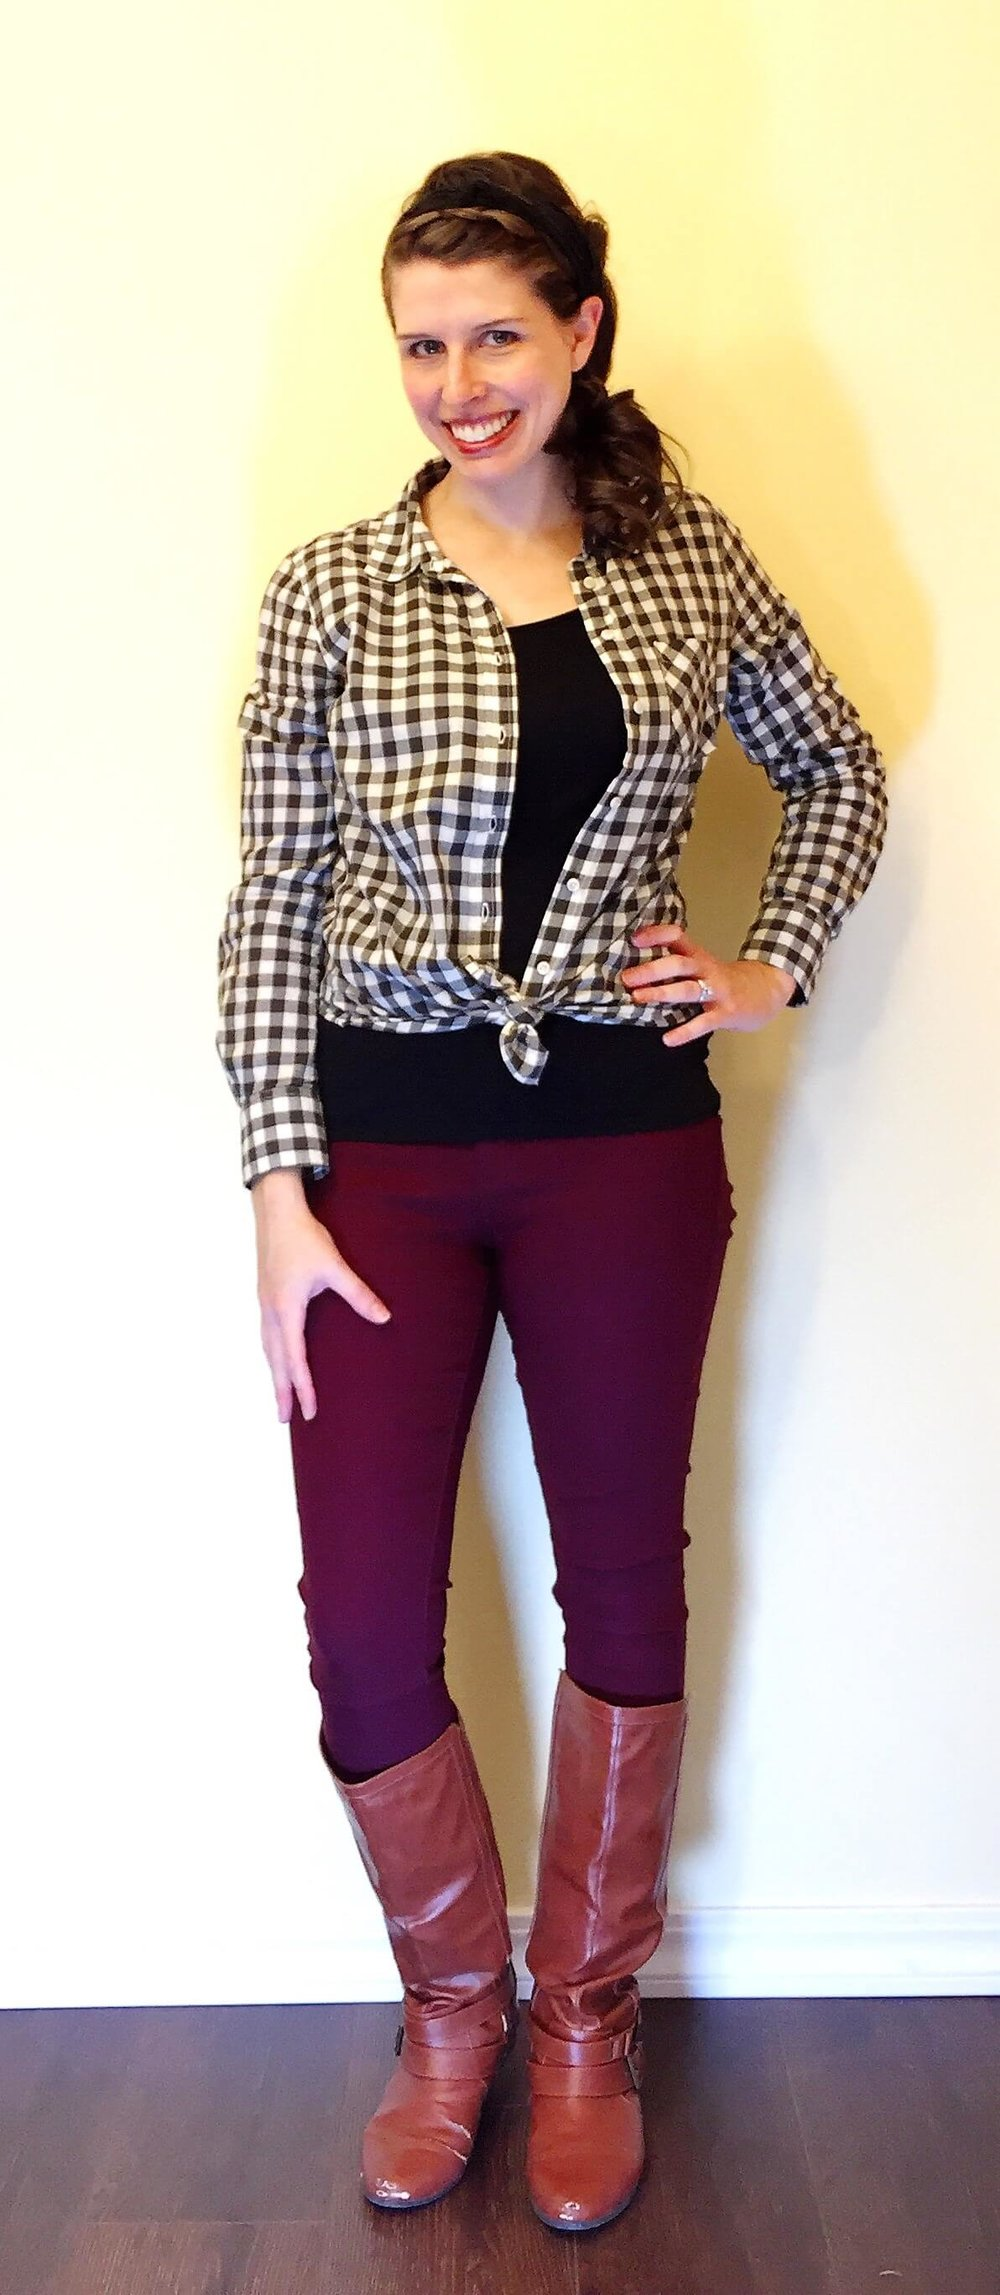 Gingham Plaid Tied + Cognac Boots